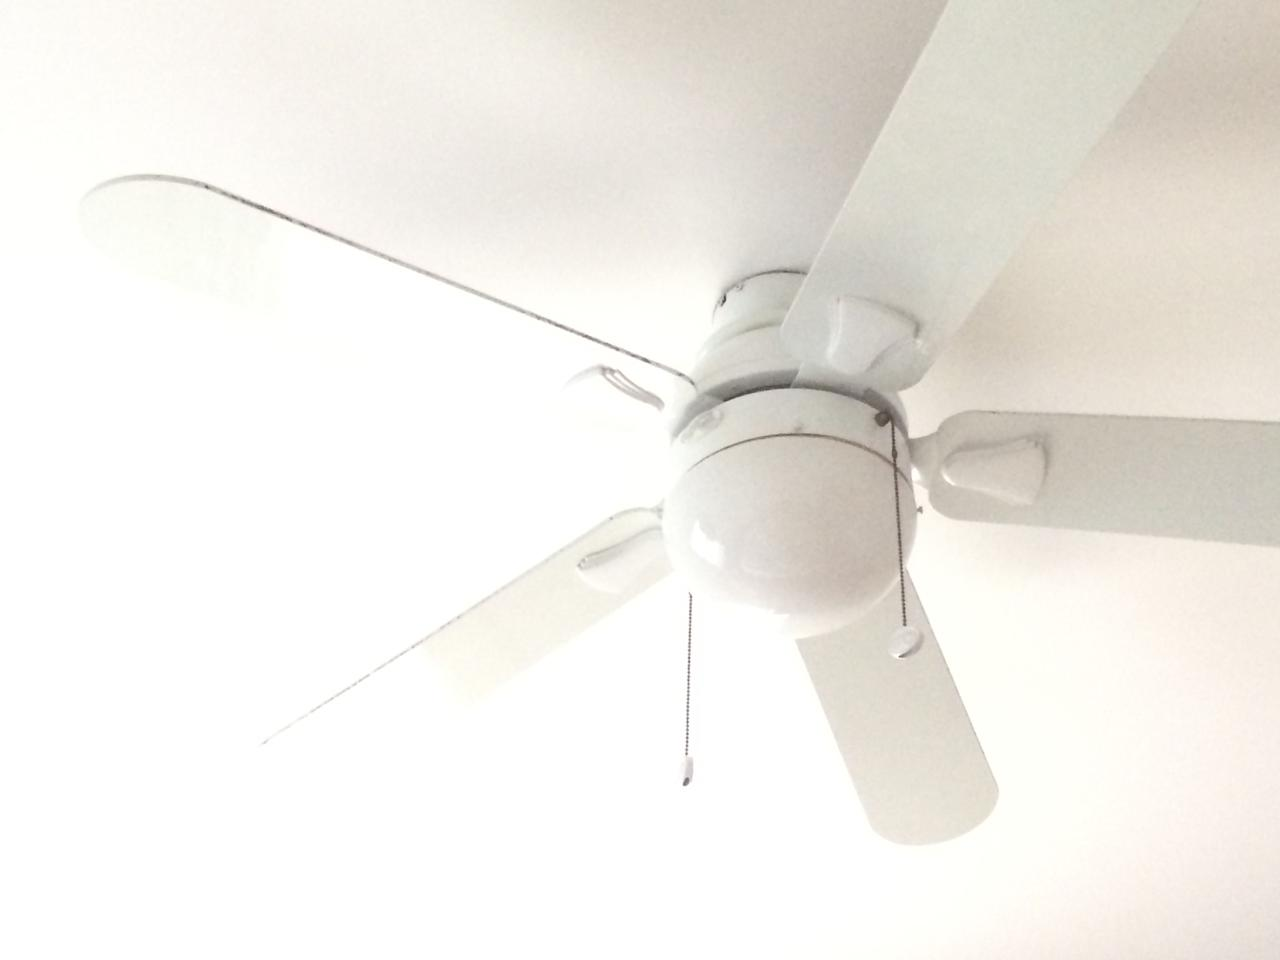 """<p>If you have fans in your house, use them. If you don't, considering installing a few. Fans can go a long way to cooling down a room and take up a lot of less energy than having your air conditioning on full blast. Having fans in your house allows you to program your thermostat up to 4 degrees higher because of the air circulation they provide.<span> Make sure your fans are set to spin counterclockwise at higher speeds to <a rel=""""nofollow"""" href=""""http://www.countryliving.com/home-maintenance/a43004/ceiling-fan-money-saving-tip/"""">save even more.</a></span></p>"""